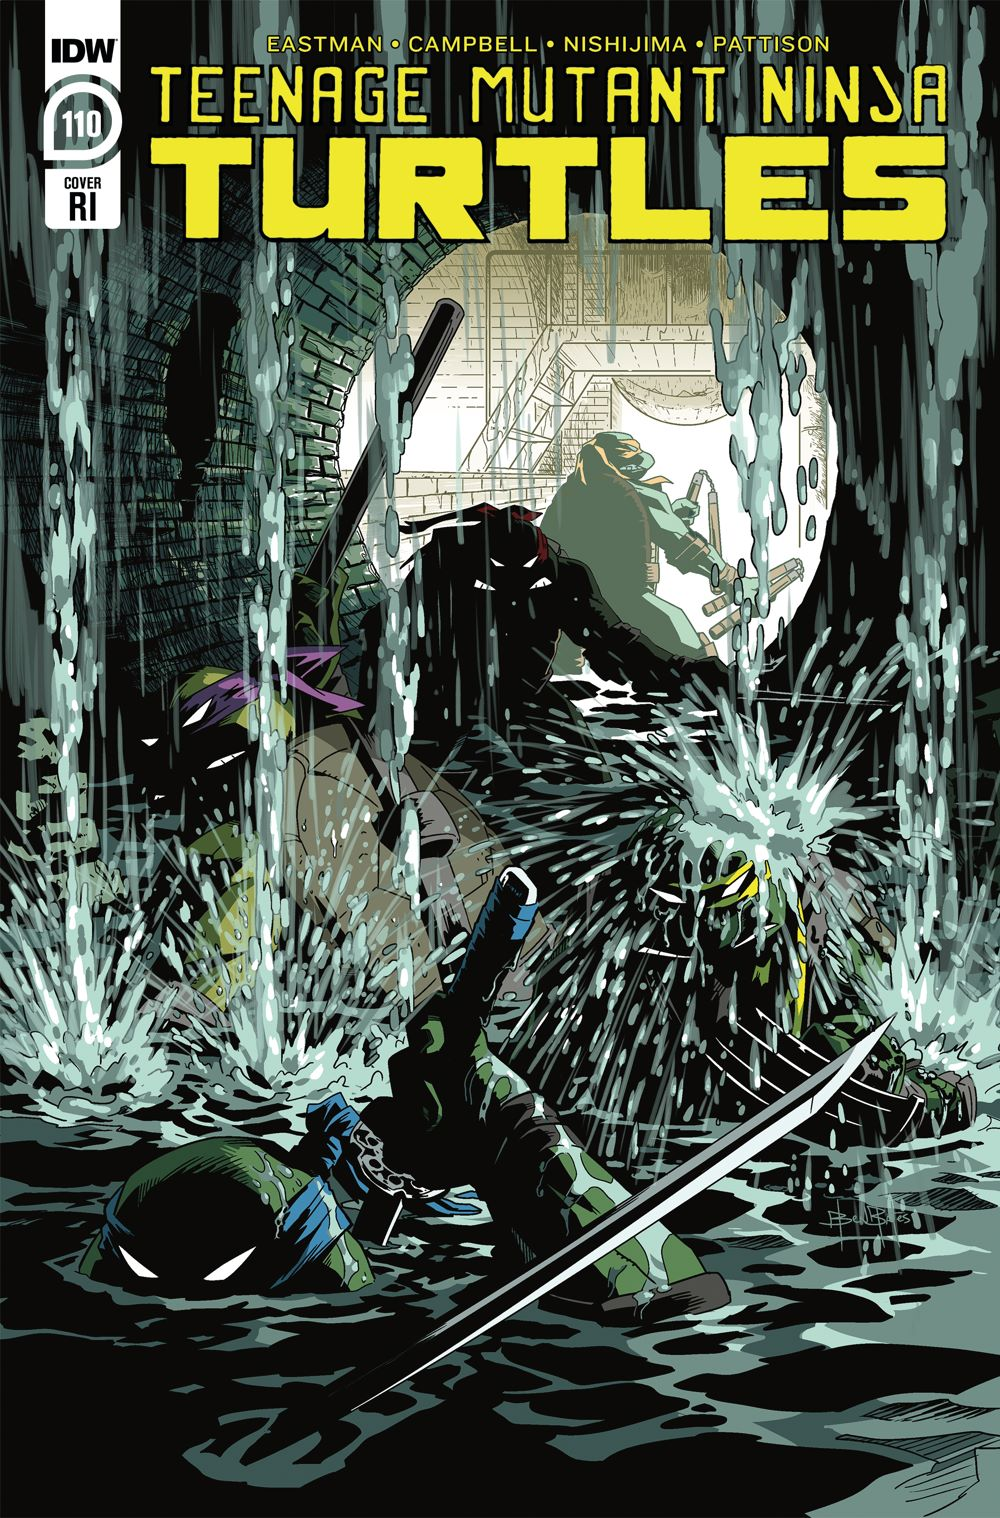 TMNT110_cvrRI ComicList Previews: TEENAGE MUTANT NINJA TURTLES #110